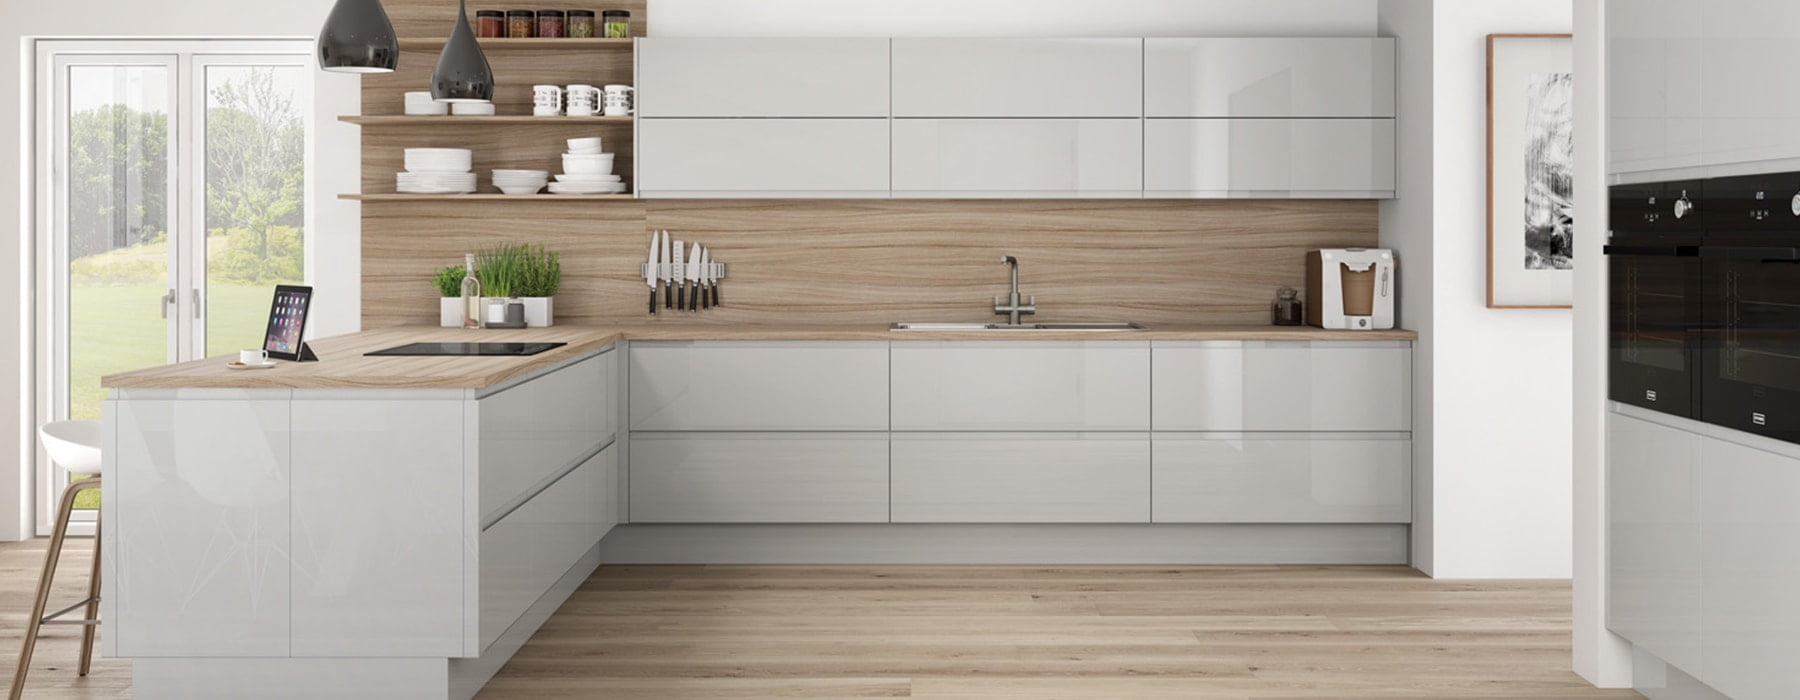 integra grey mist kitchen